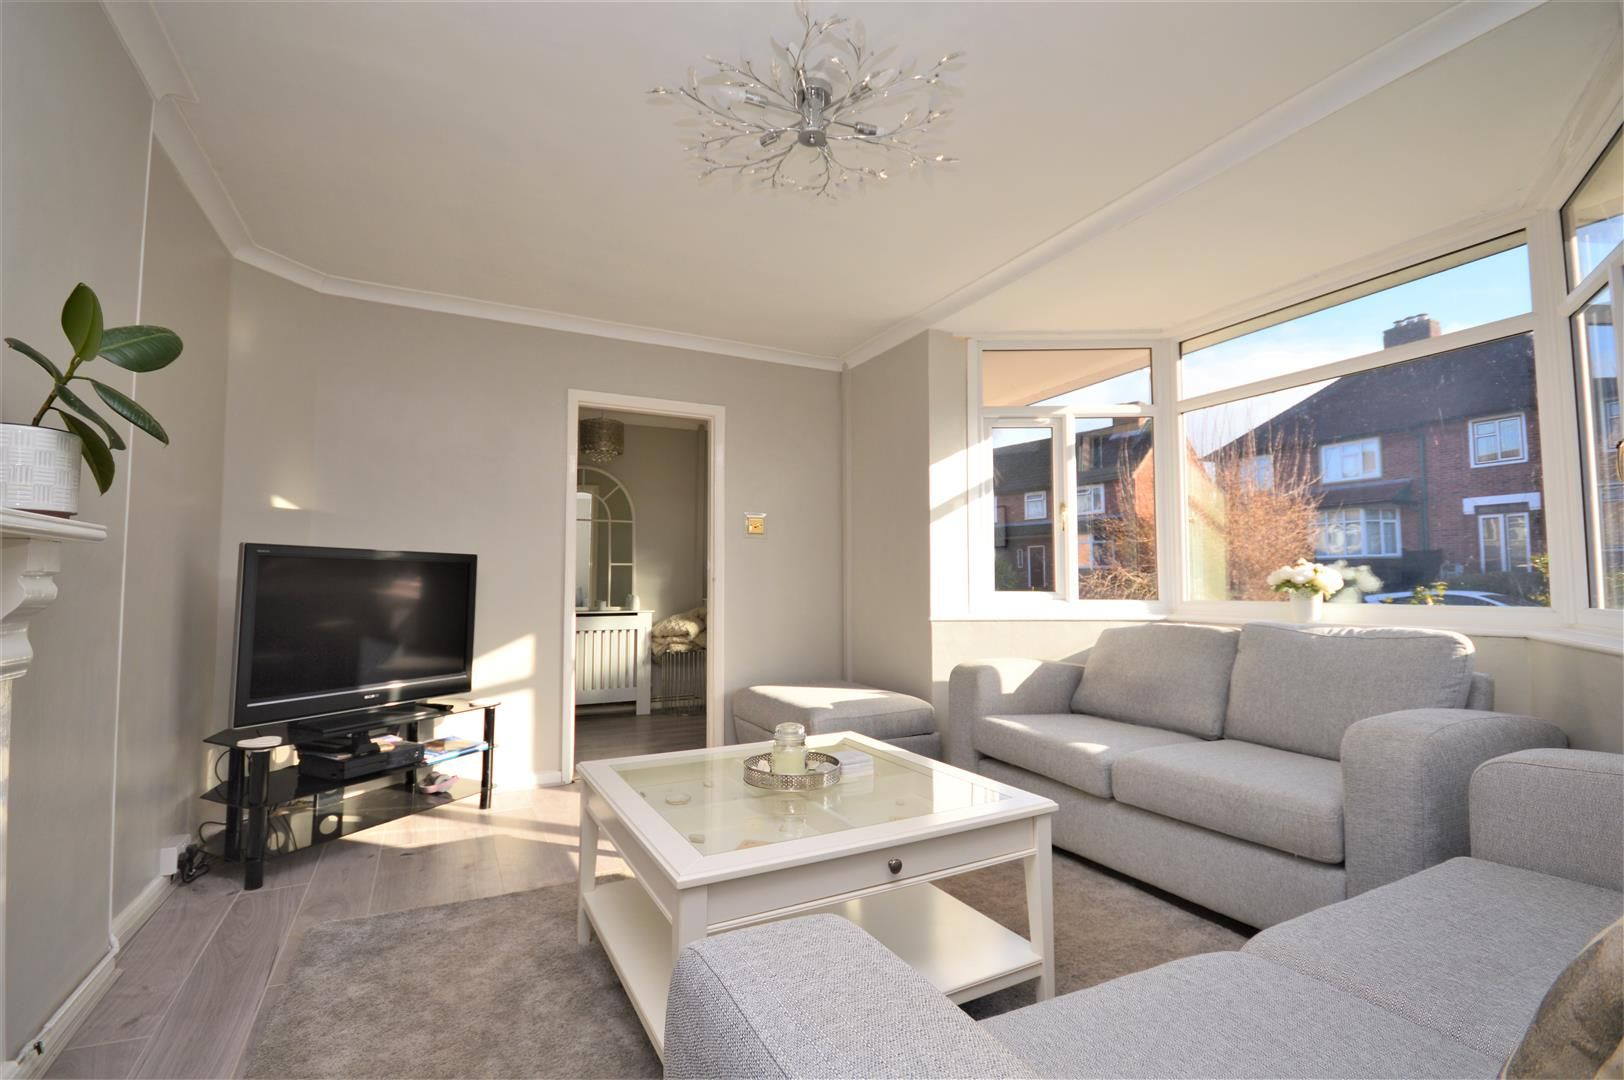 3 bed end-of-terrace for sale in Hereford 4